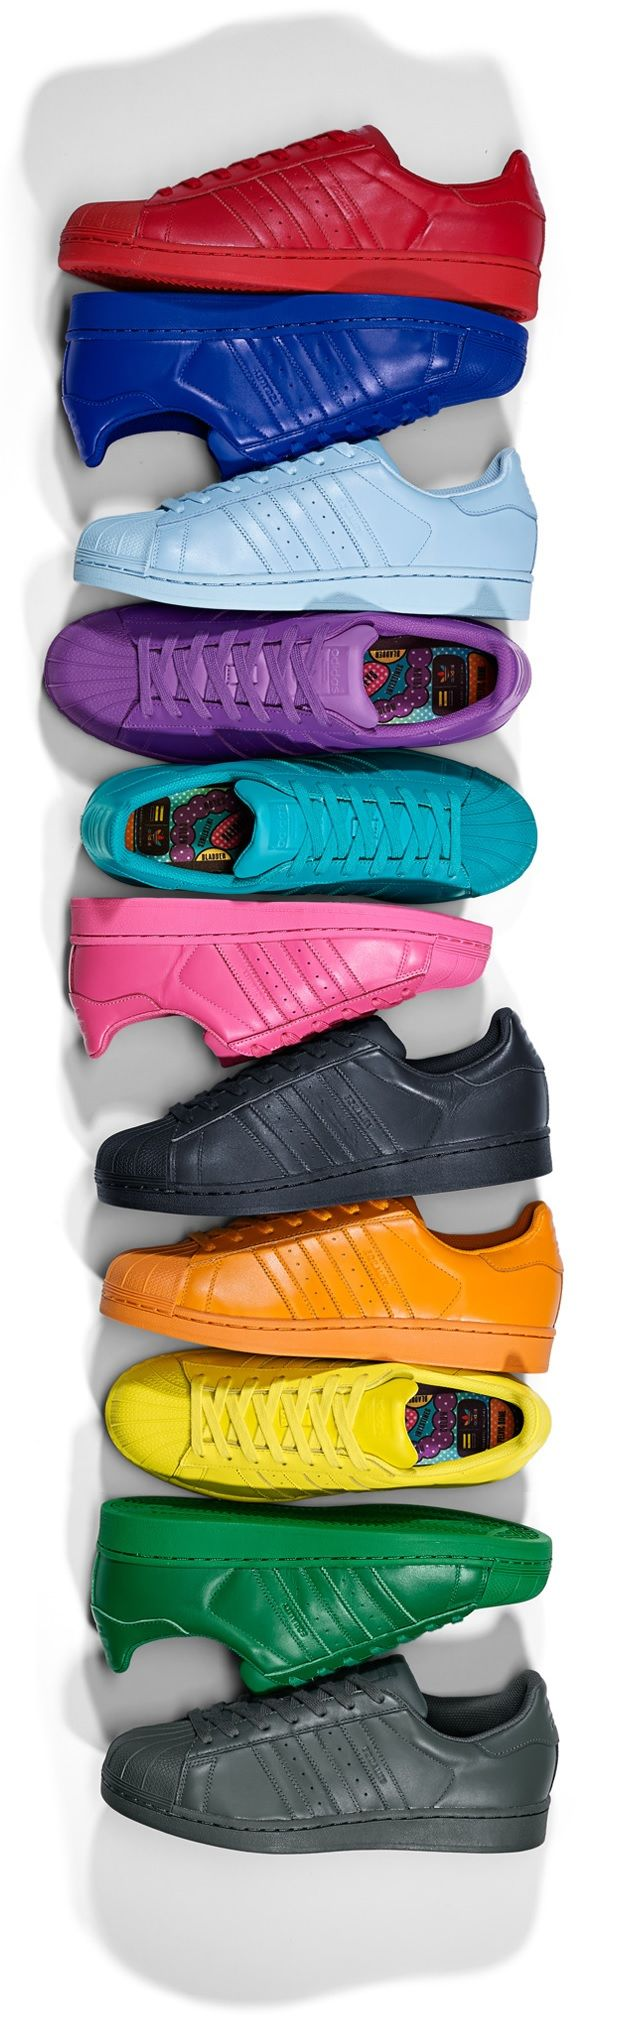 Pharell Williams x adidas Originals Superstar 'Supercolor Pack'